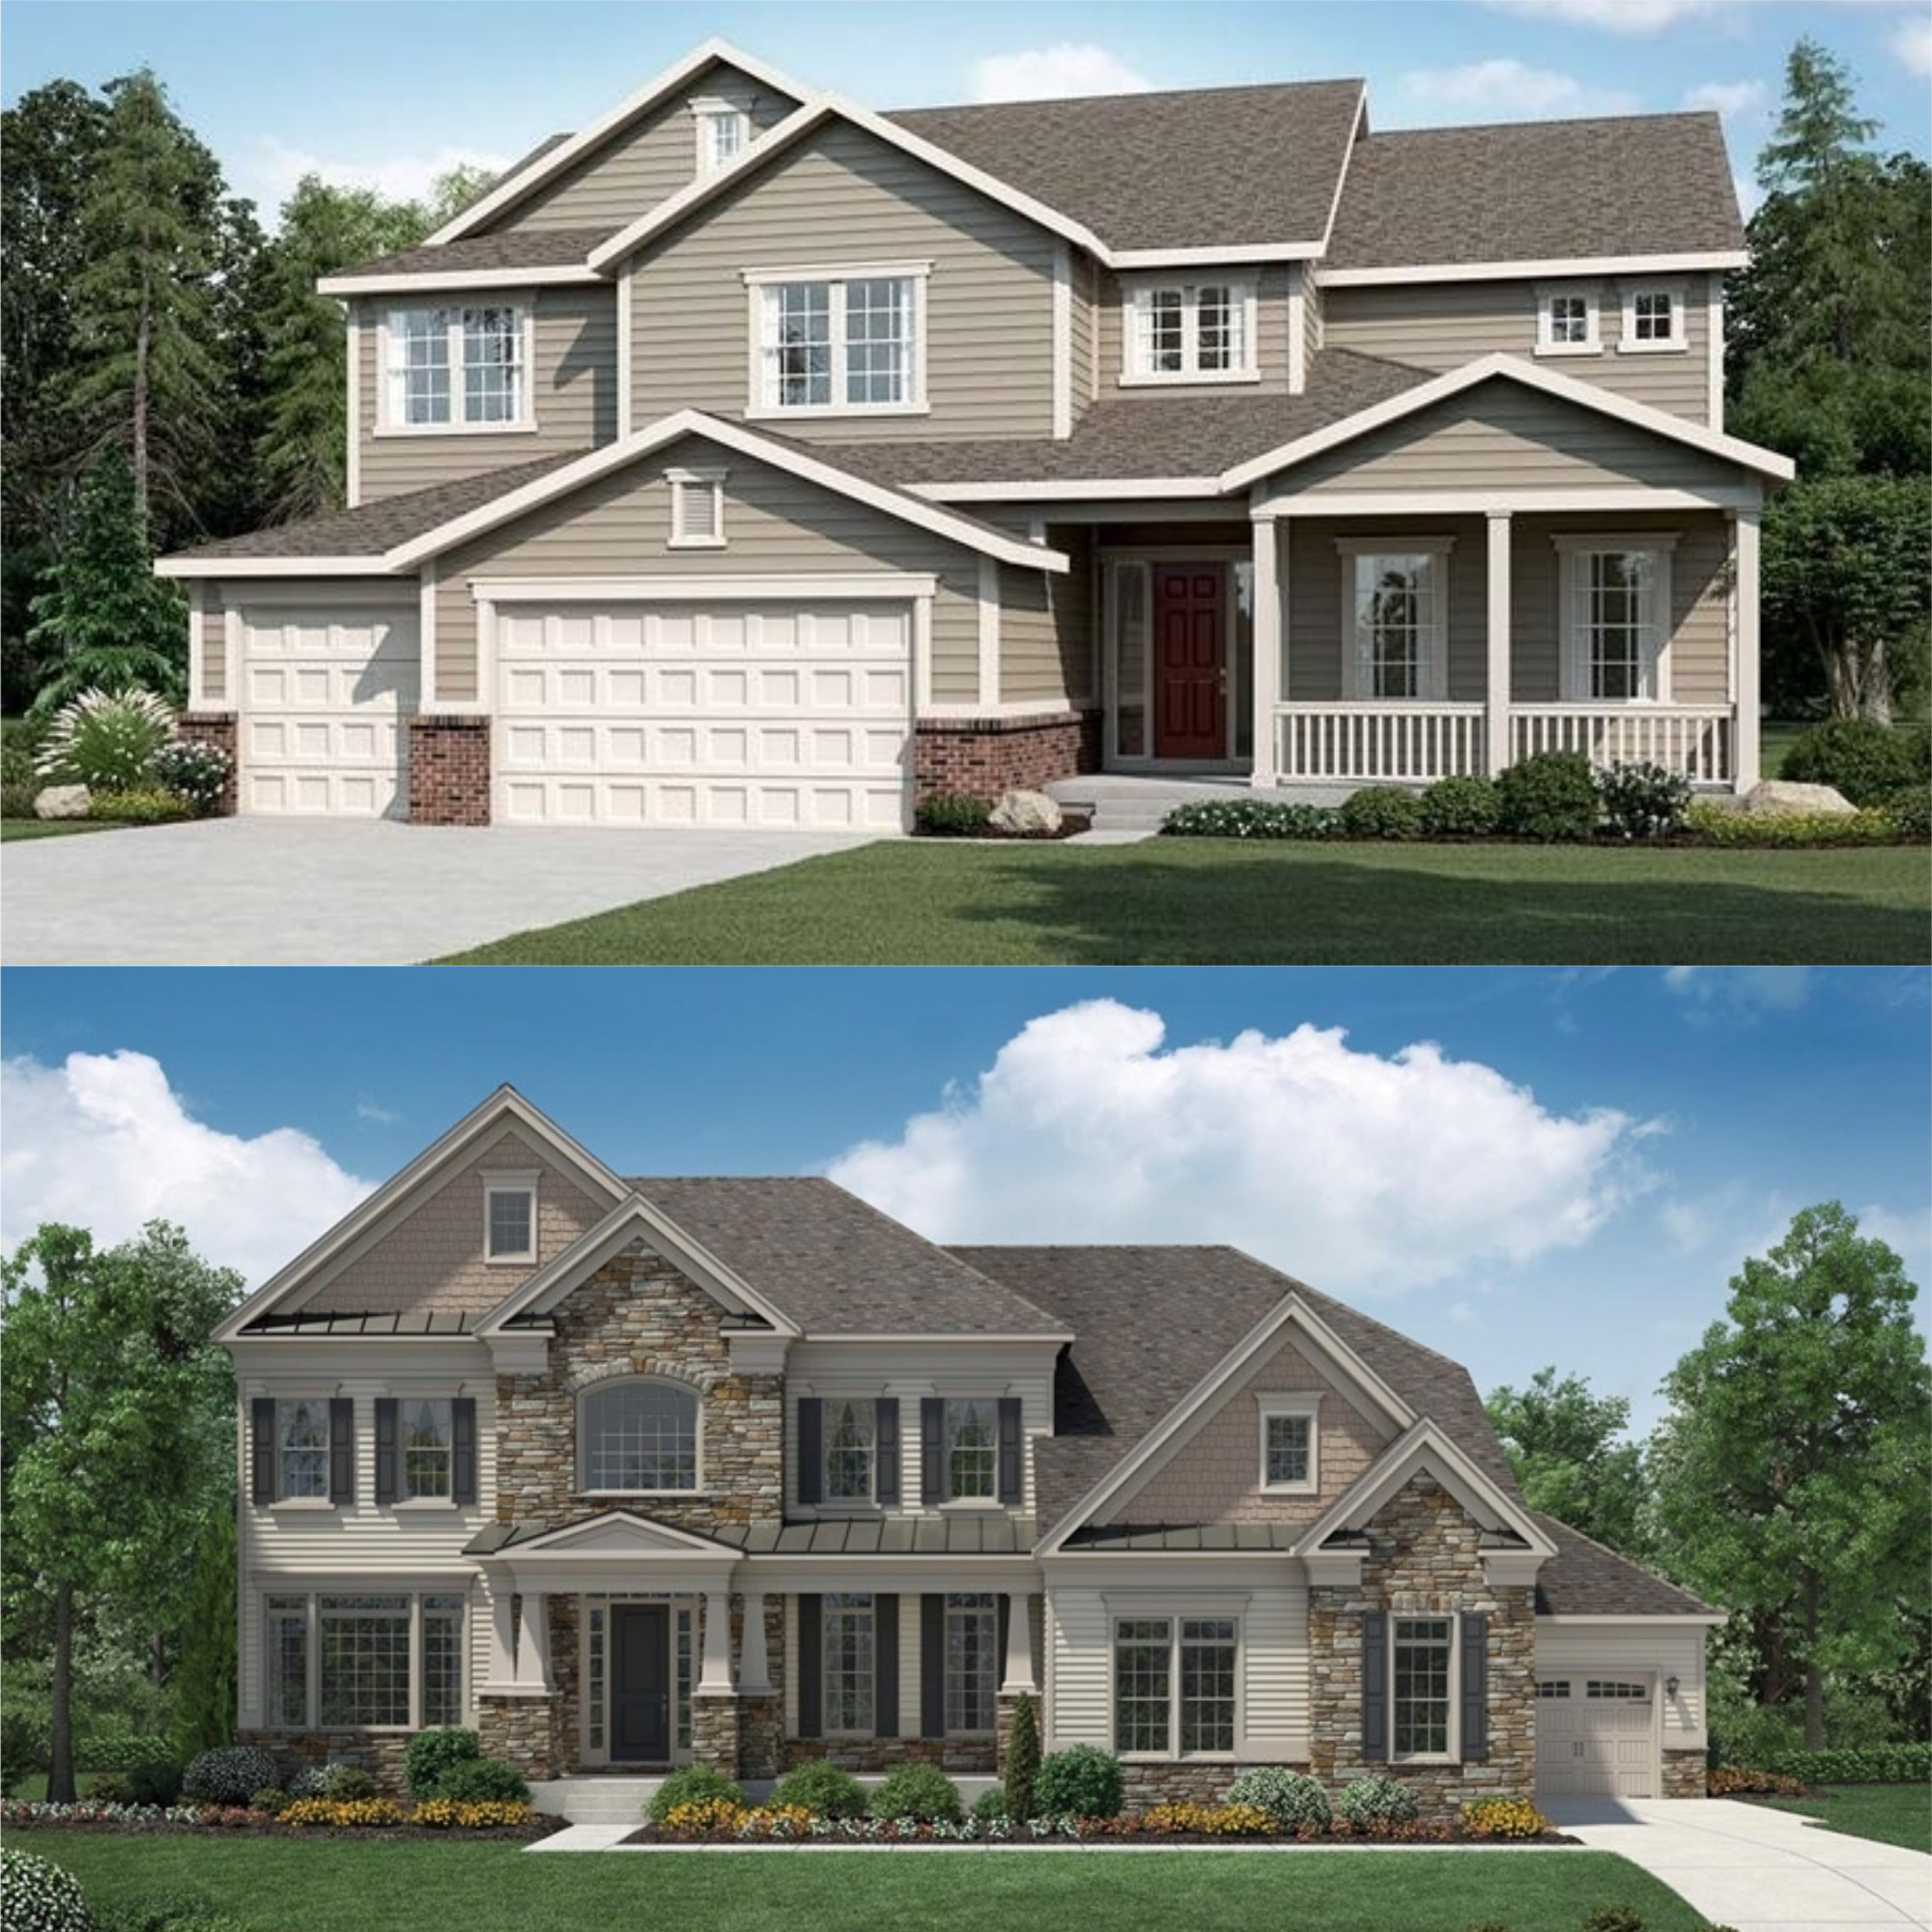 4200 Sq Ft Home or 70 Exterior Panes